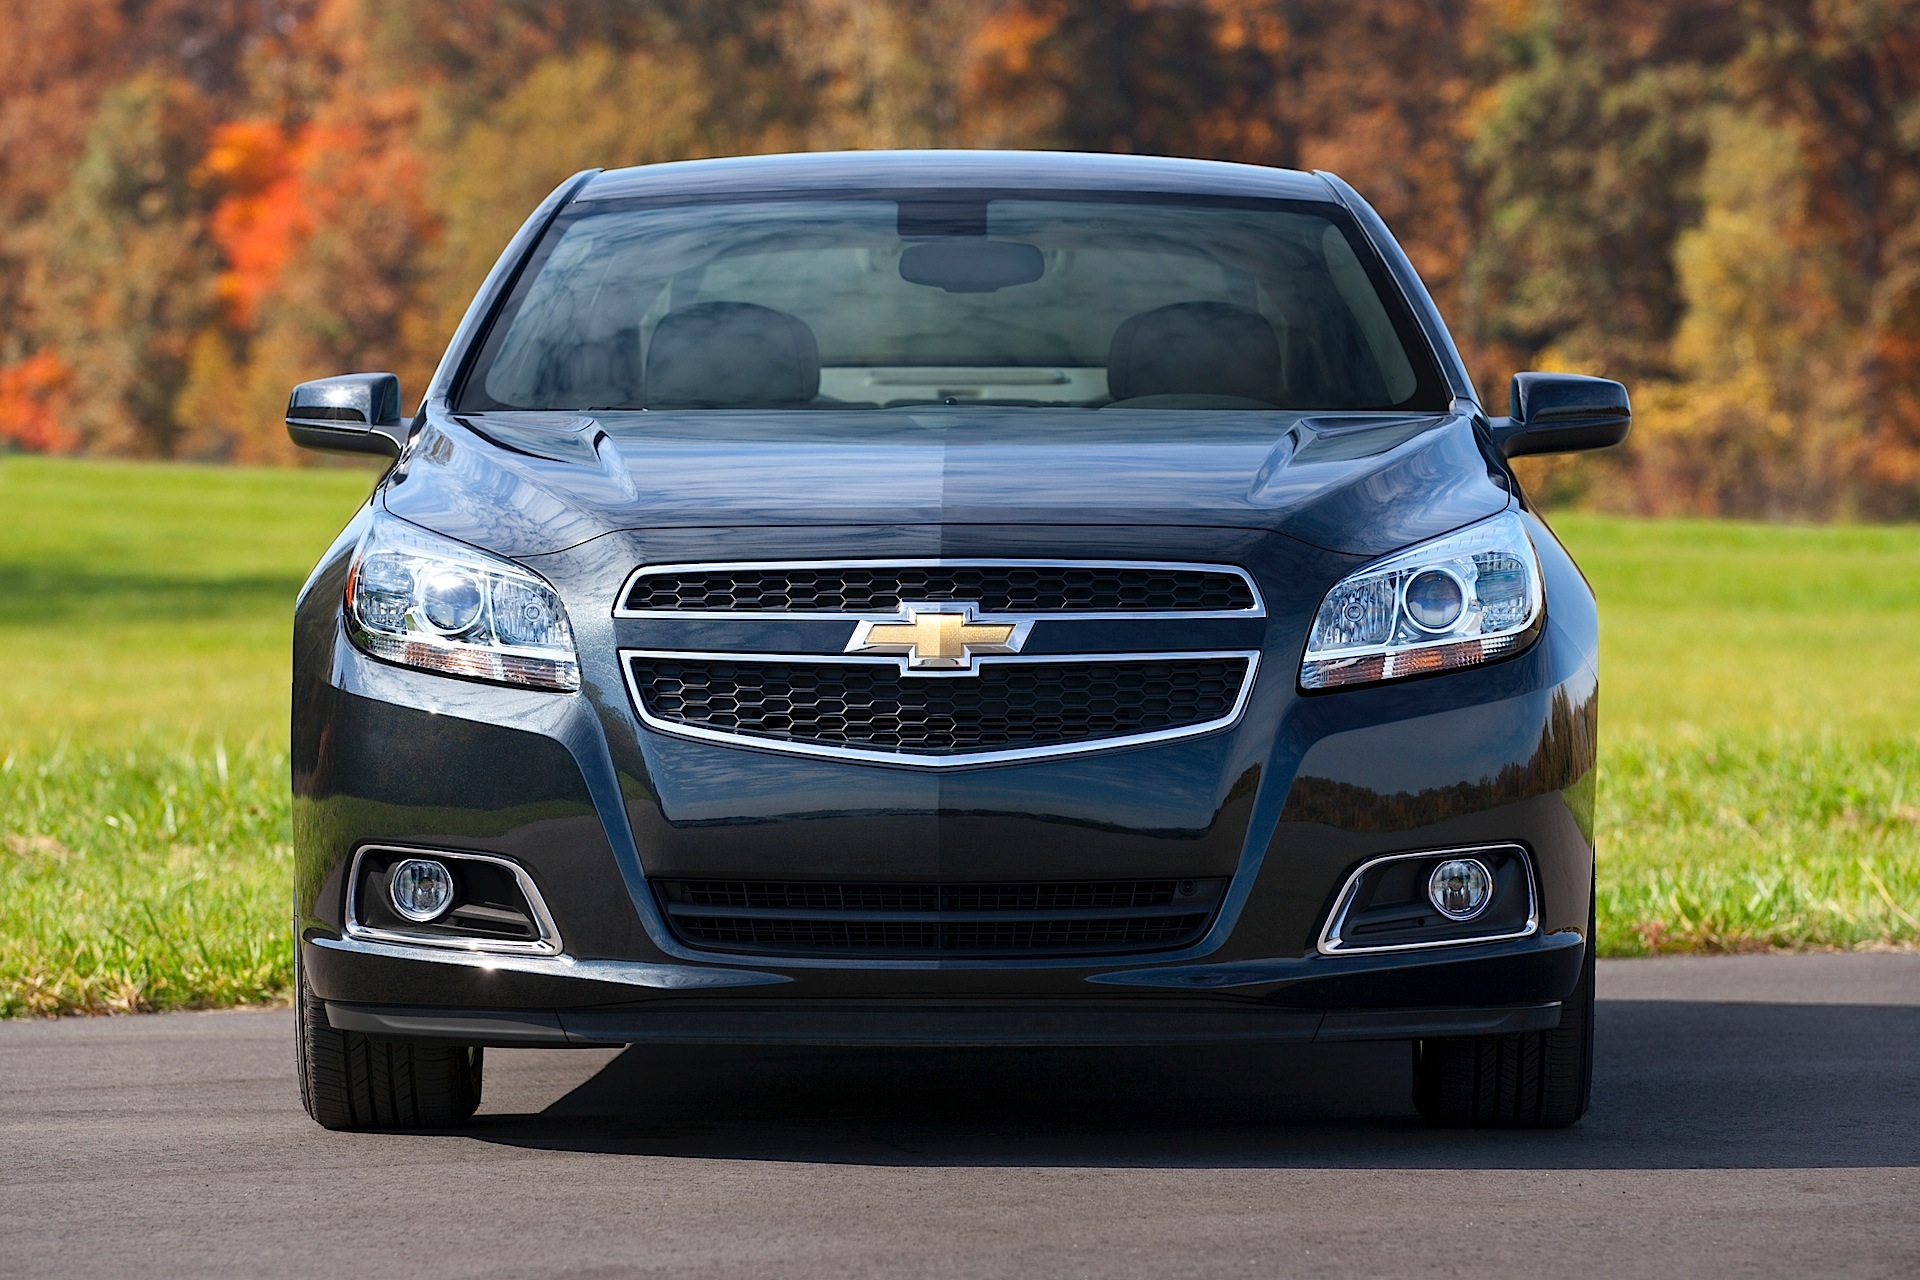 CHEVROLET Malibu ECO specs & photos - 2013, 2014, 2015 ...